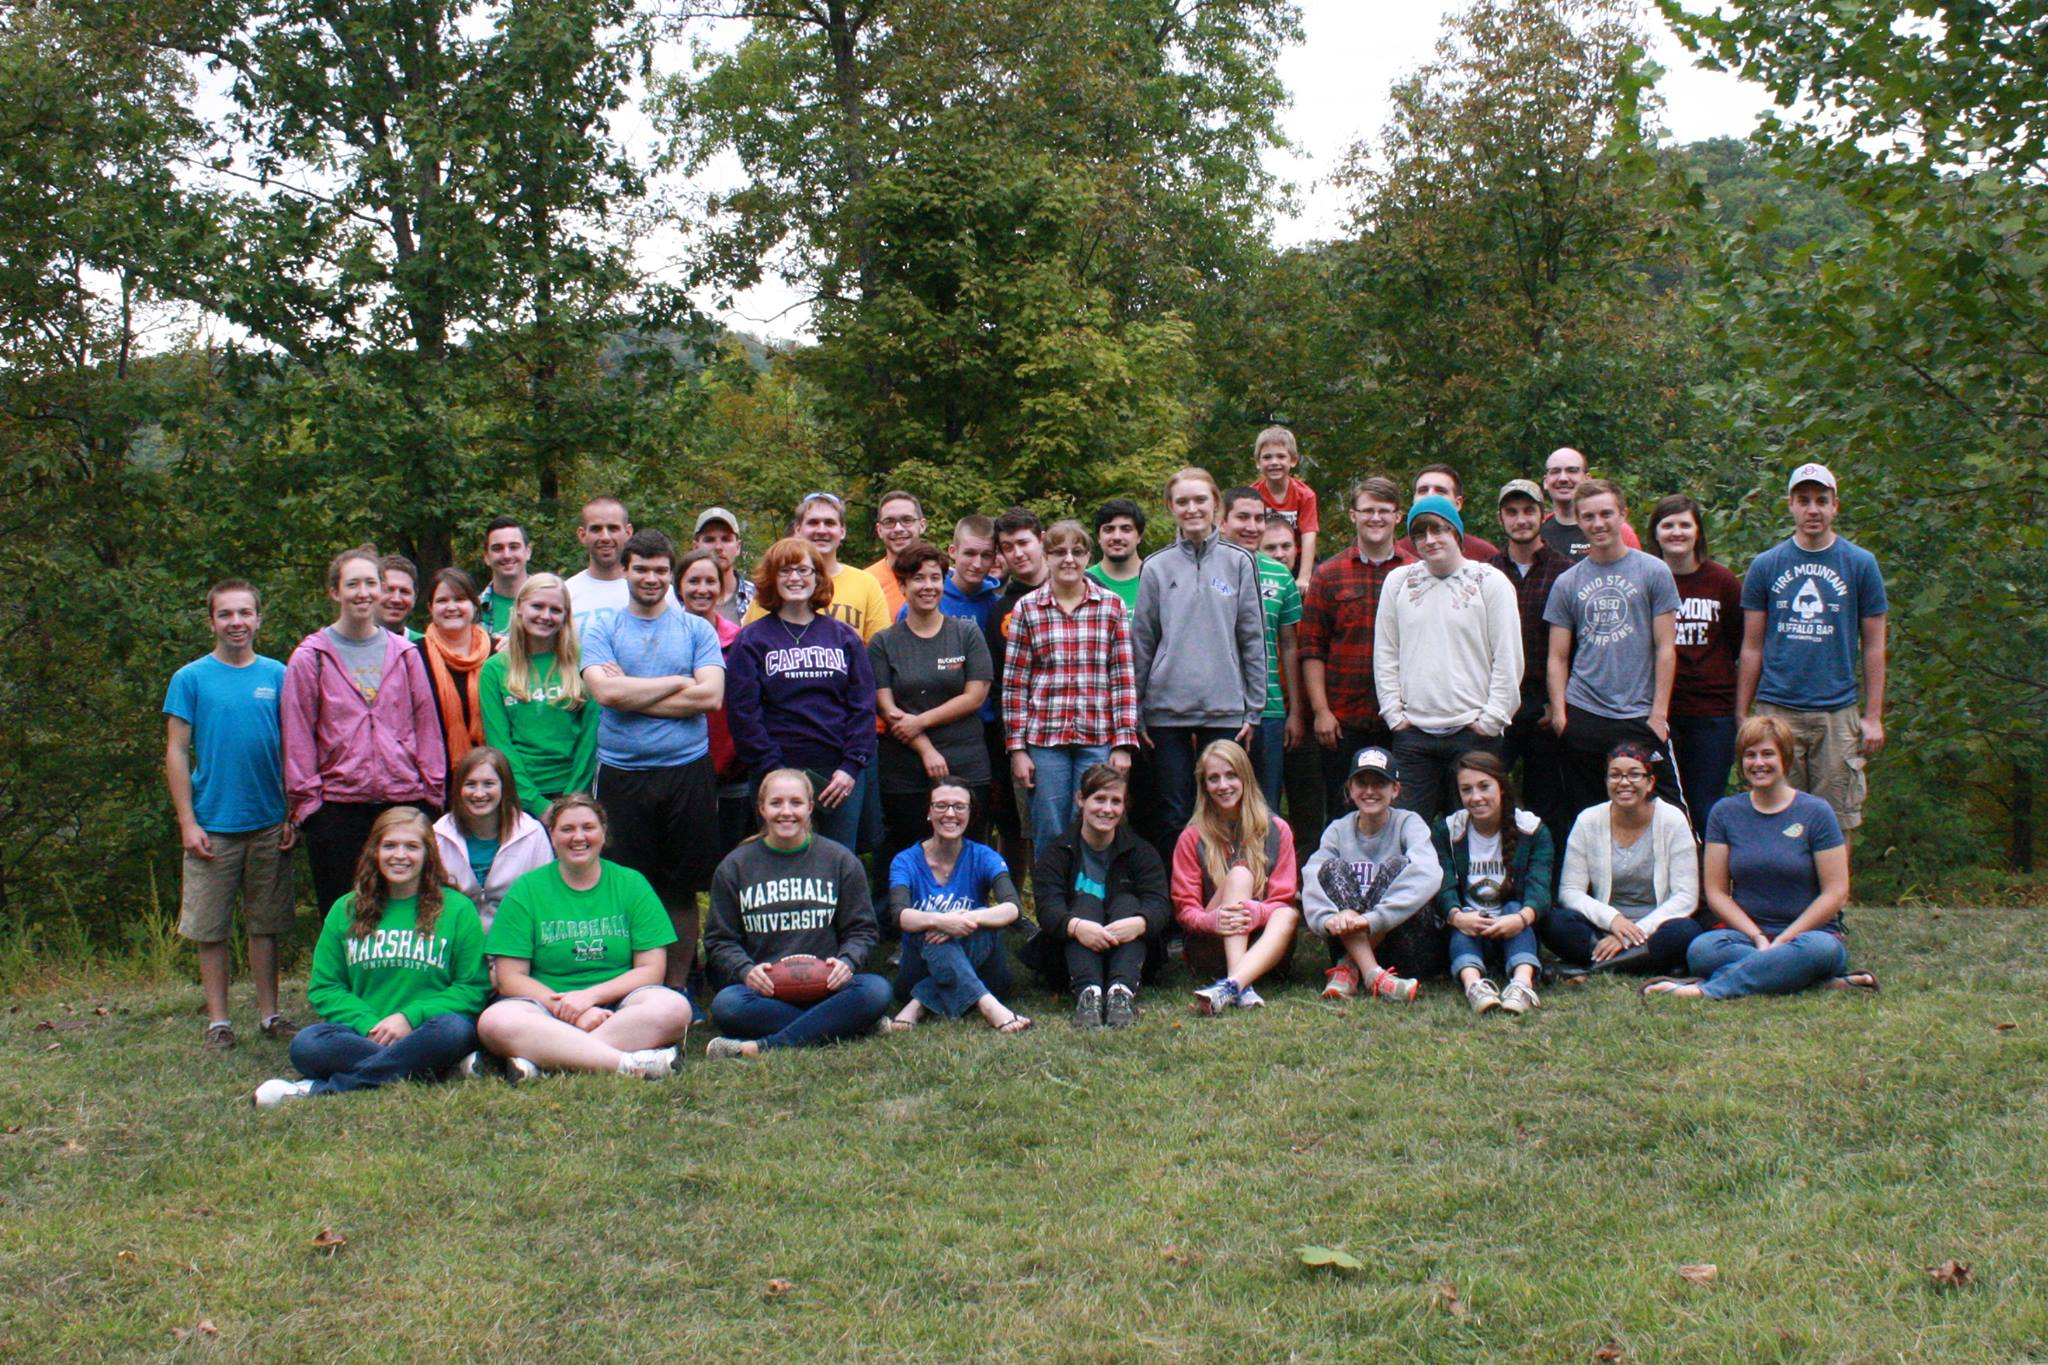 Campus Ministry Retreat Group 2015